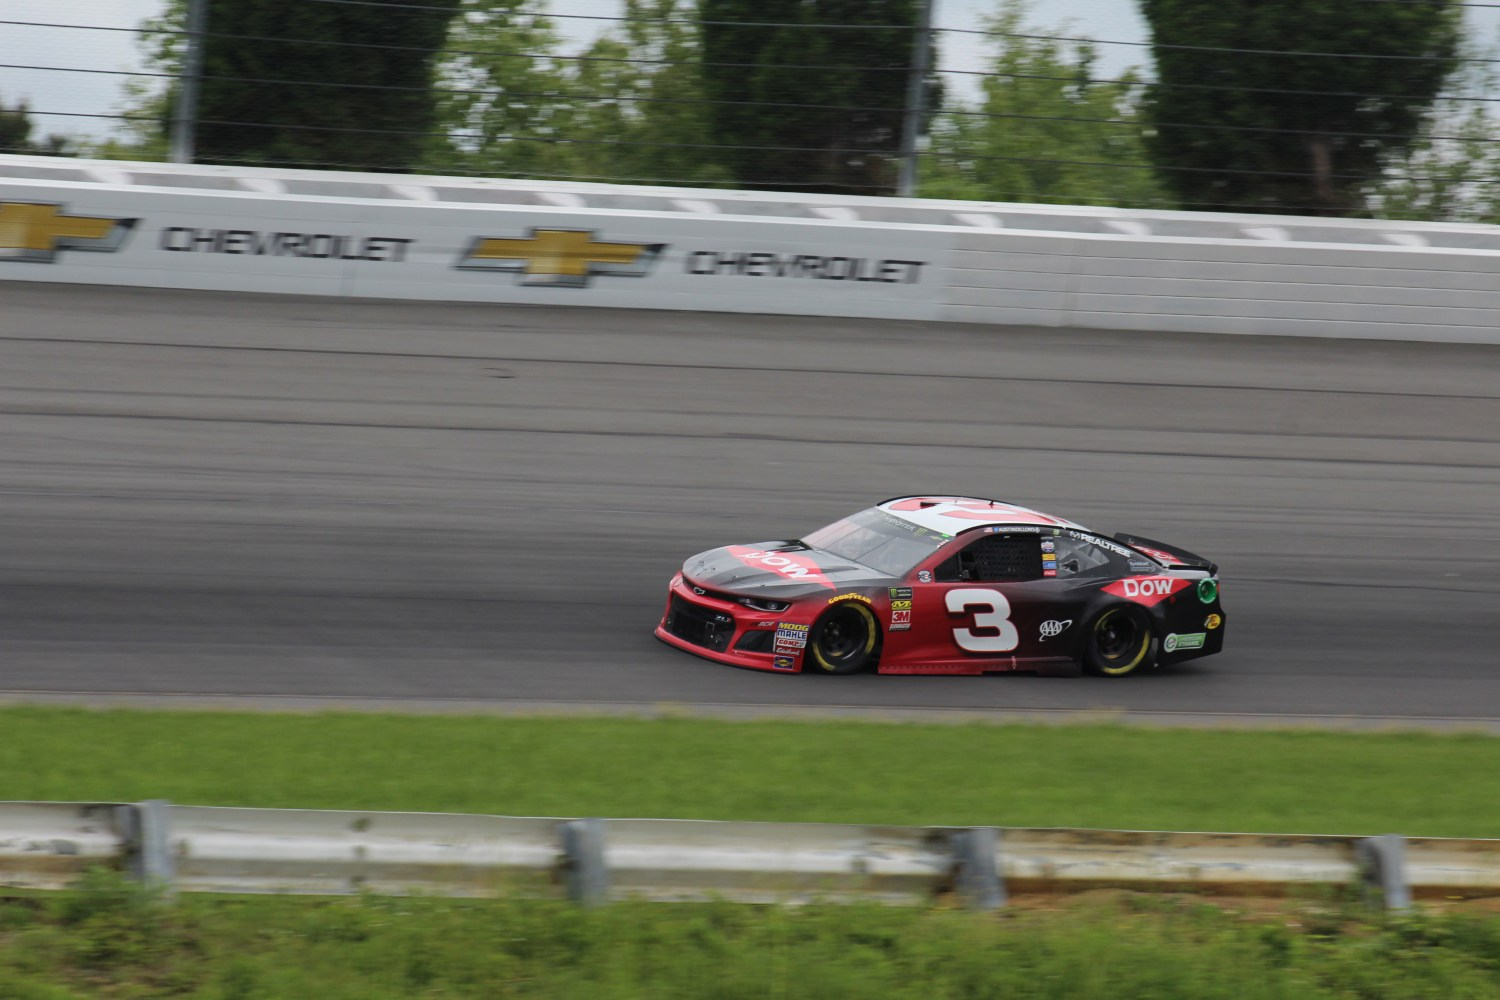 Austin Dillon races during the 2018 Pocono 400. (Tyler Head | The Racing Experts)